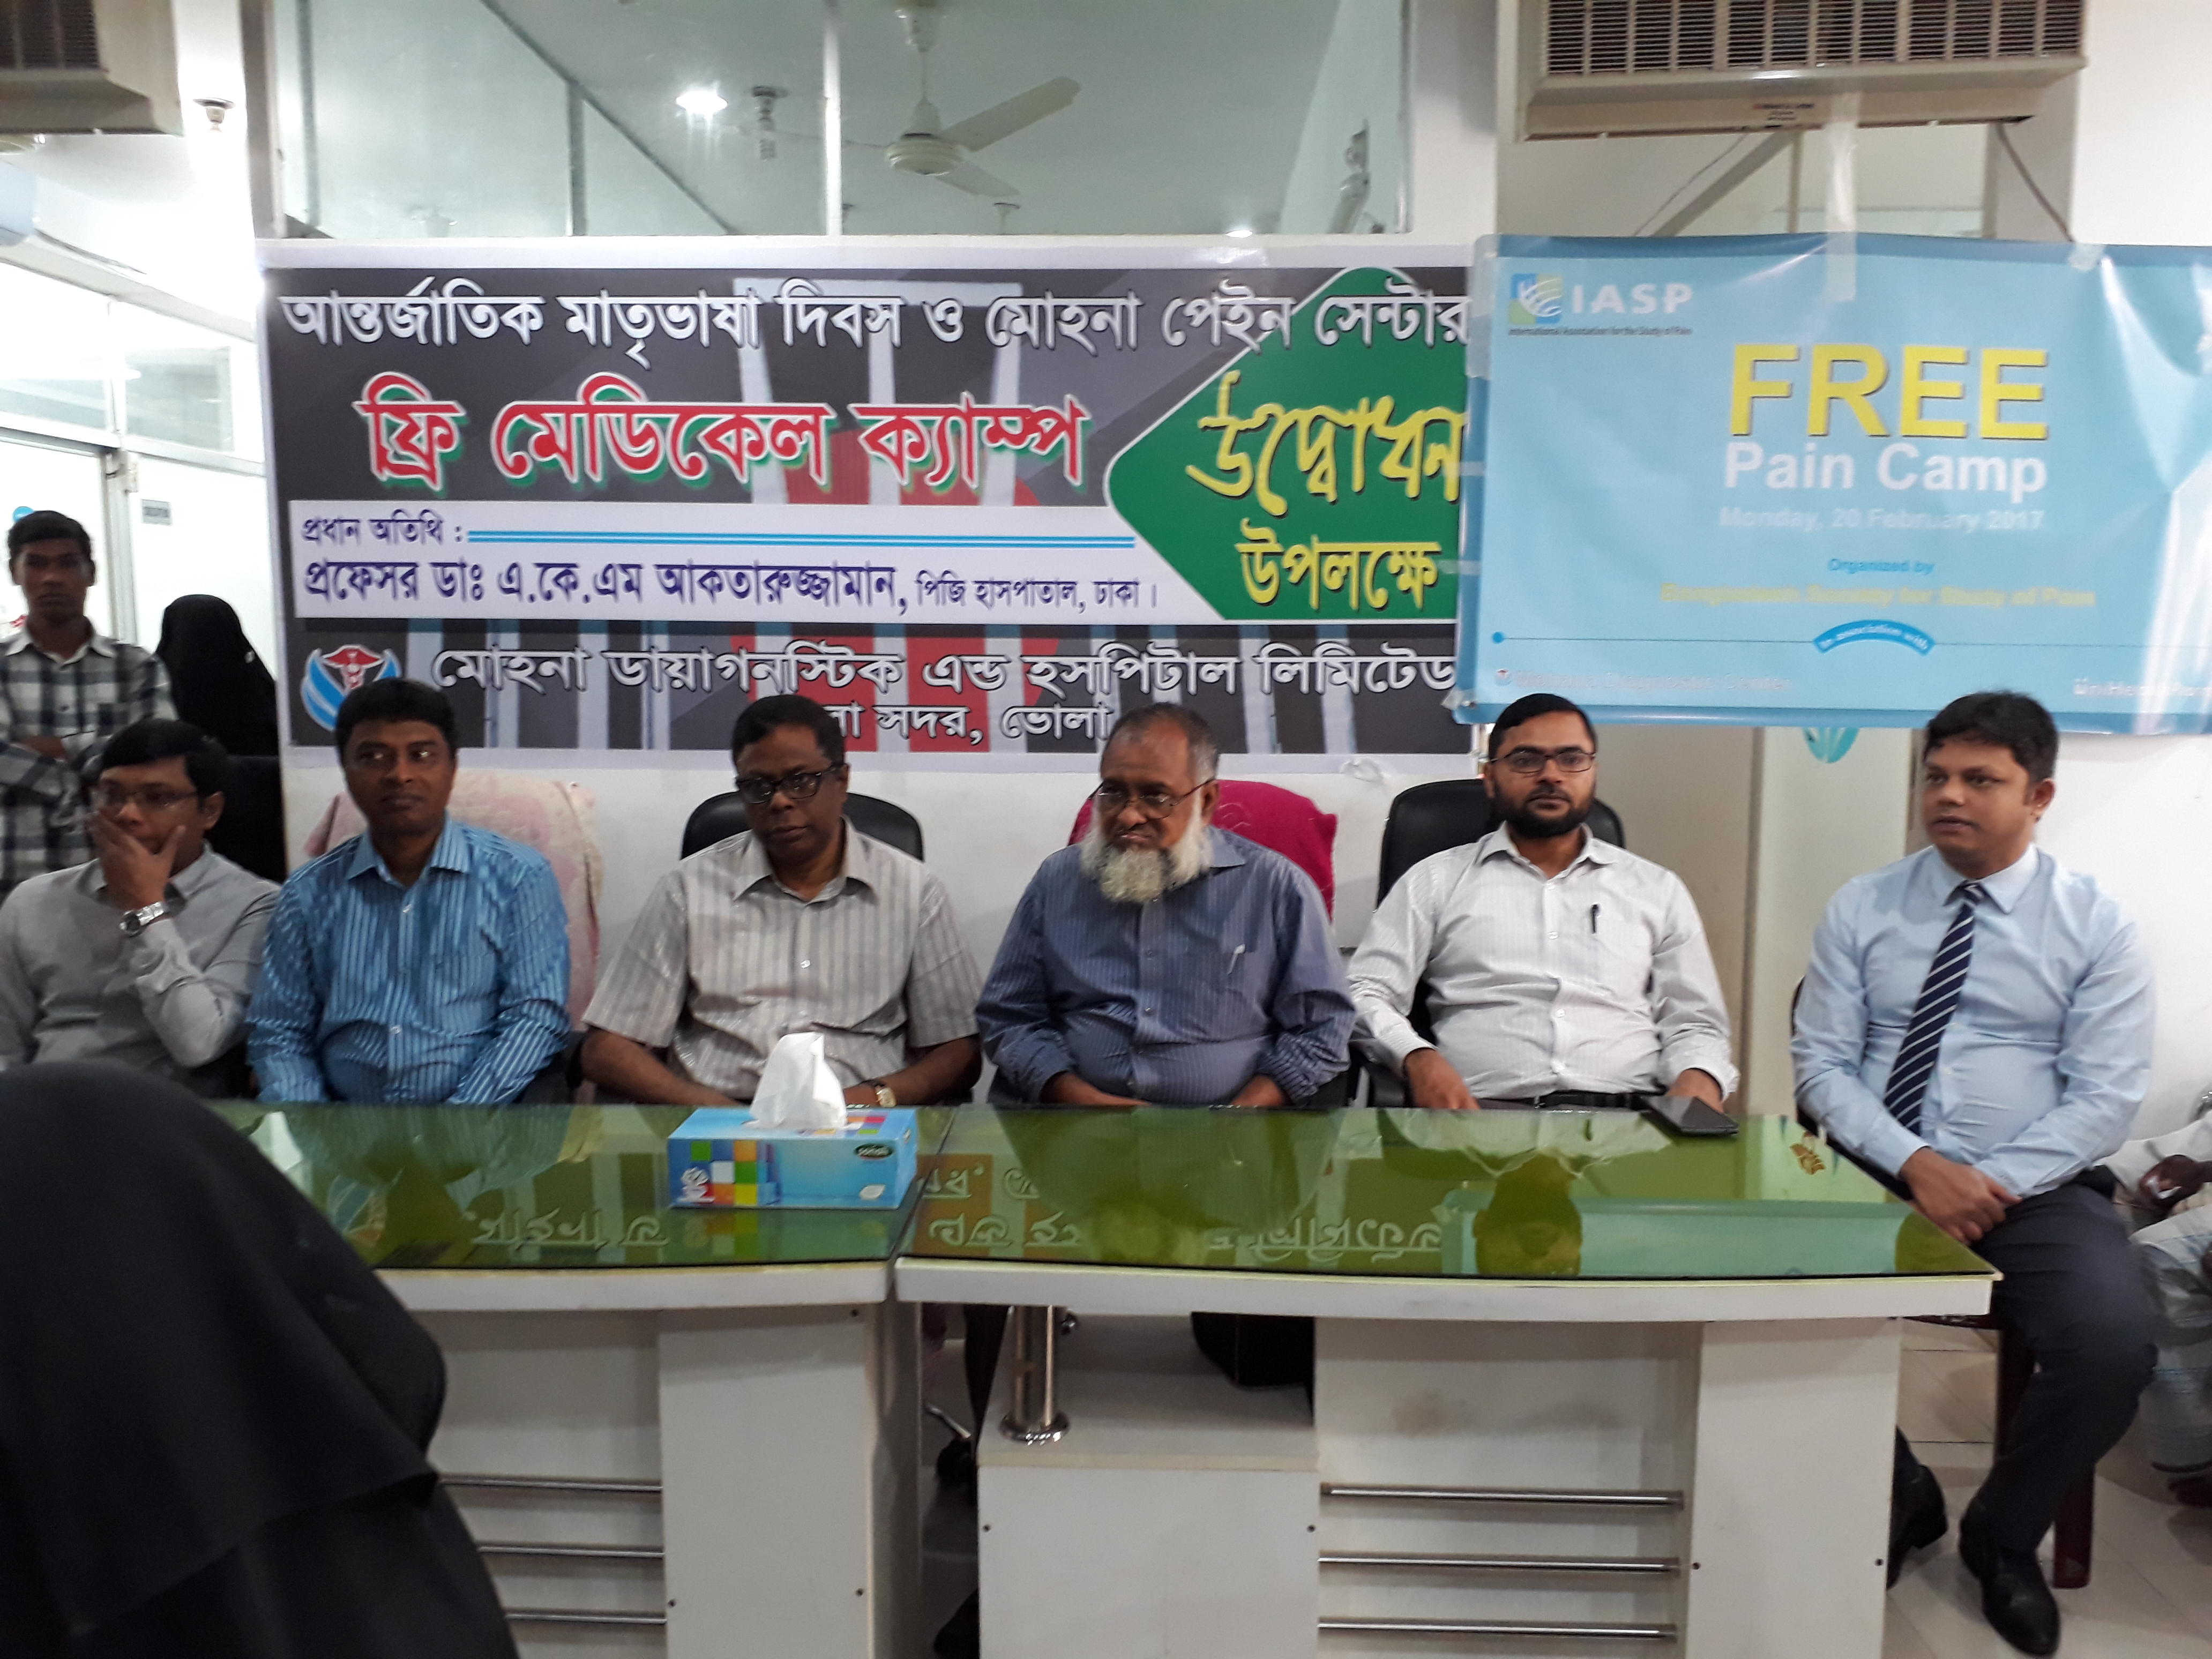 Free pain camp at Bhola